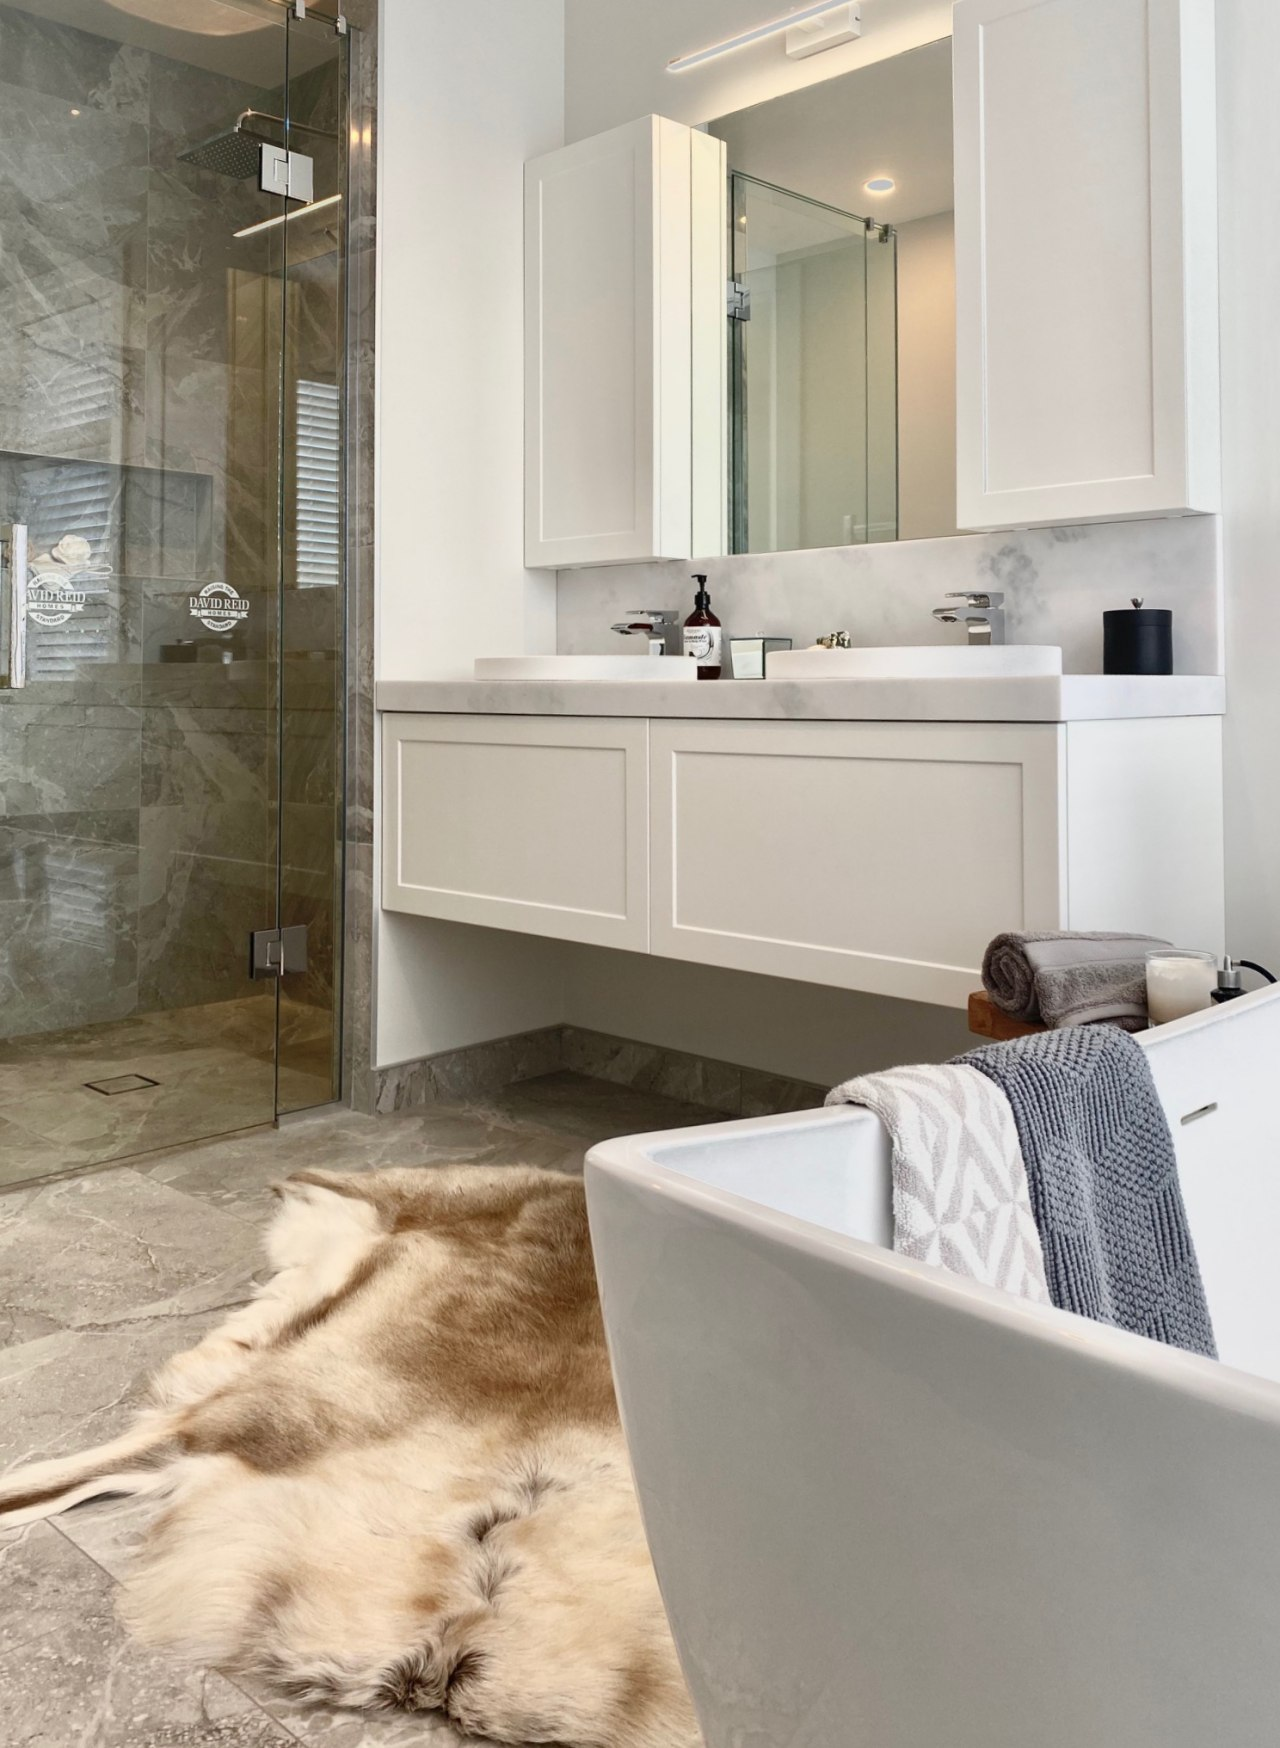 The vanity and wall cabinets have panelled fronts